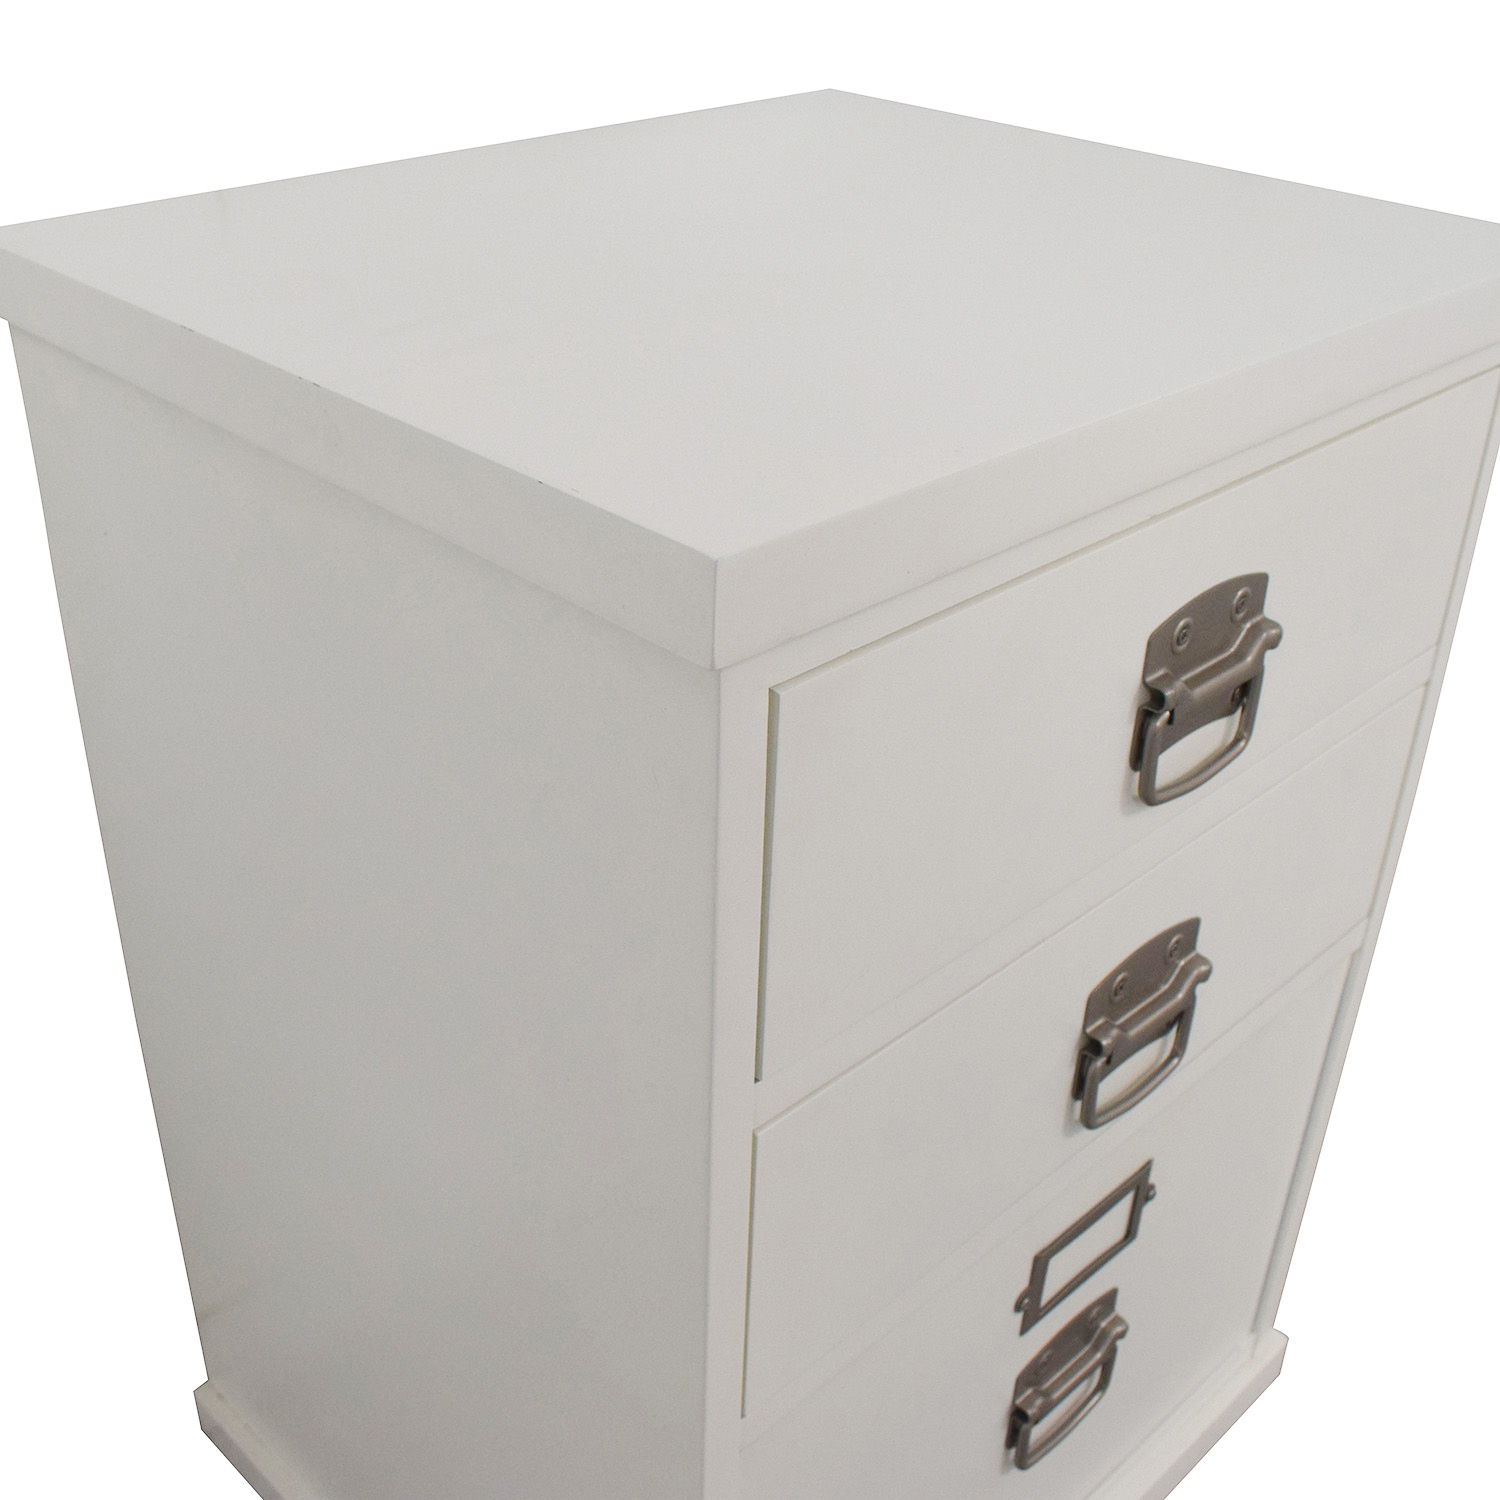 Pottery Barn Pottery Barn Bedford White Three-Drawer File Cabinet Storage